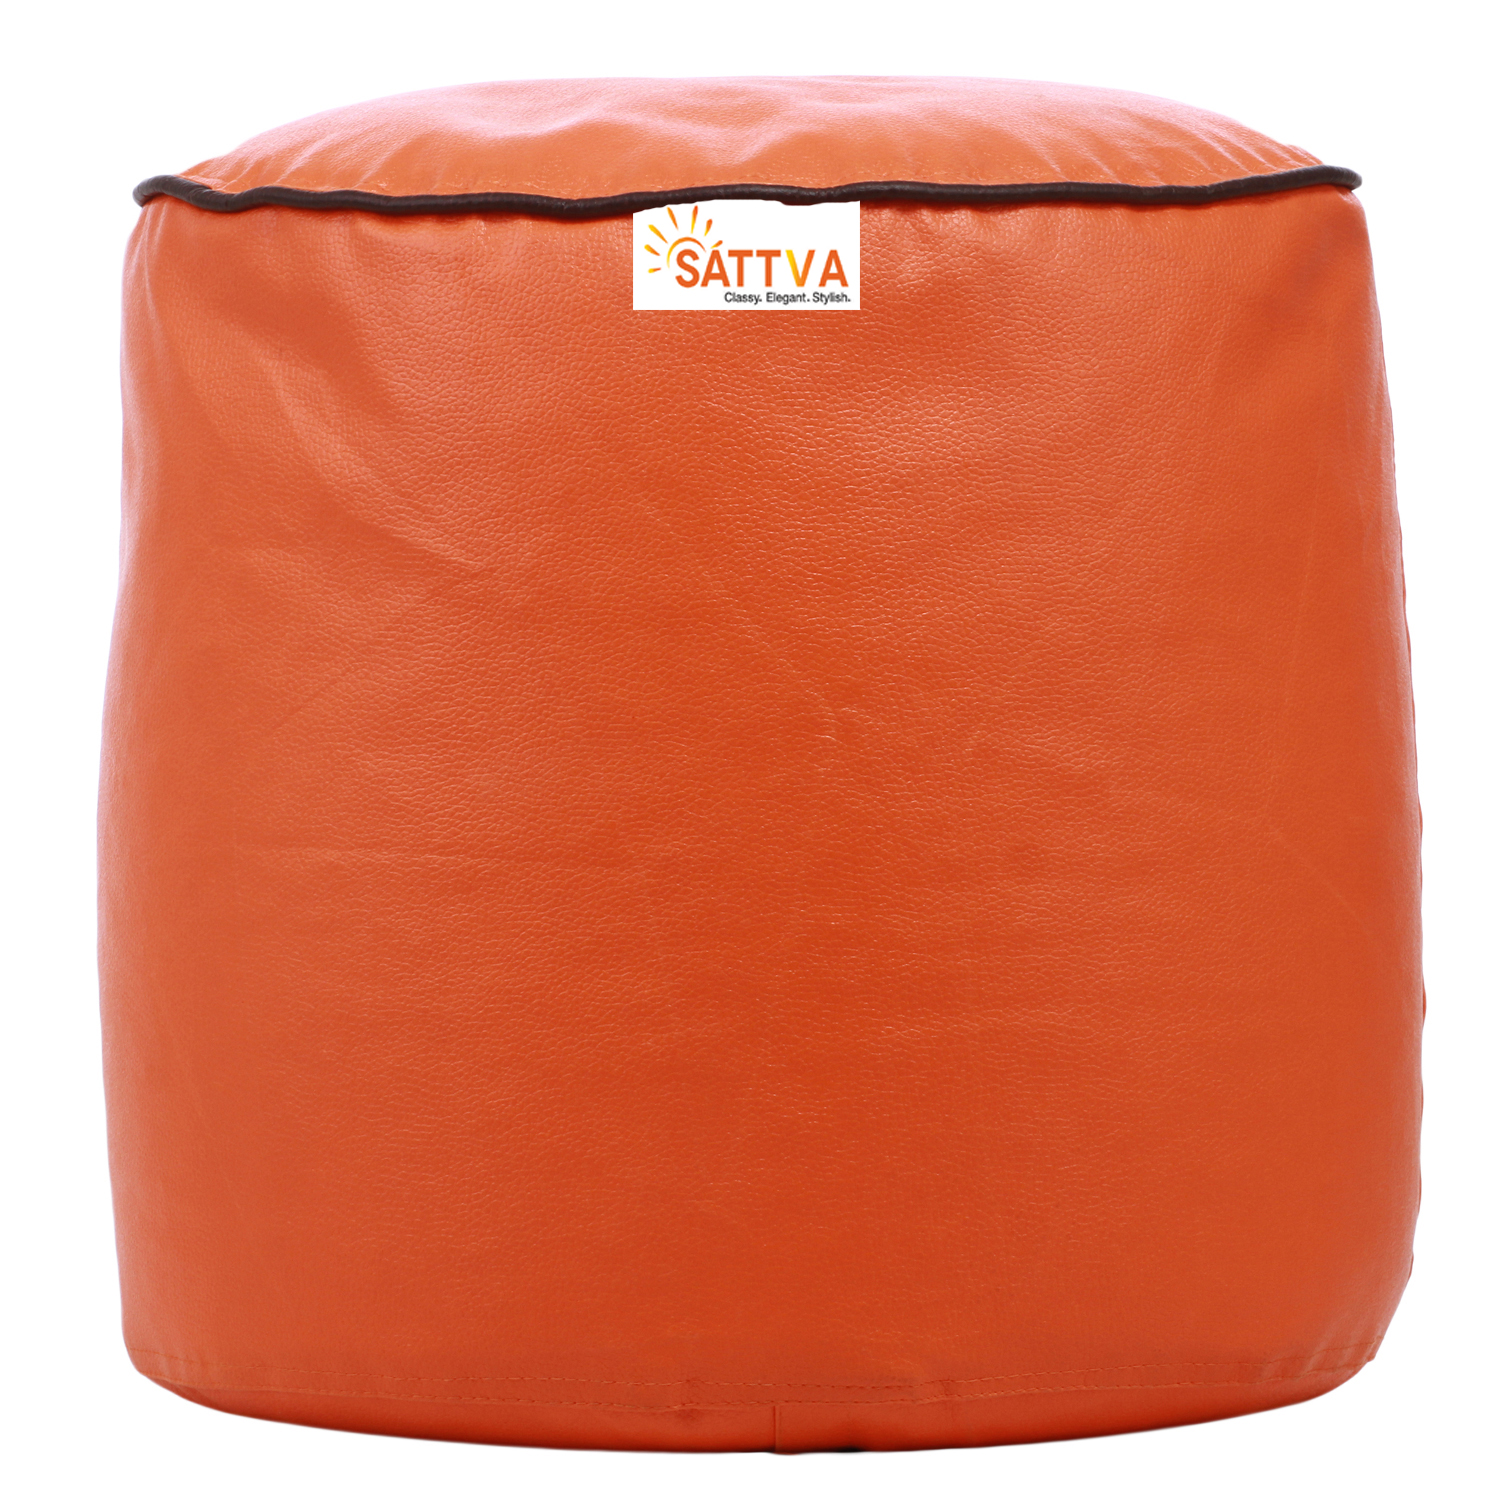 Sattva Combo Classic Bean Bag And Round Foostool-(Filled) Black With Pink Piping - XL (Orange with Brown Piping, XXL)